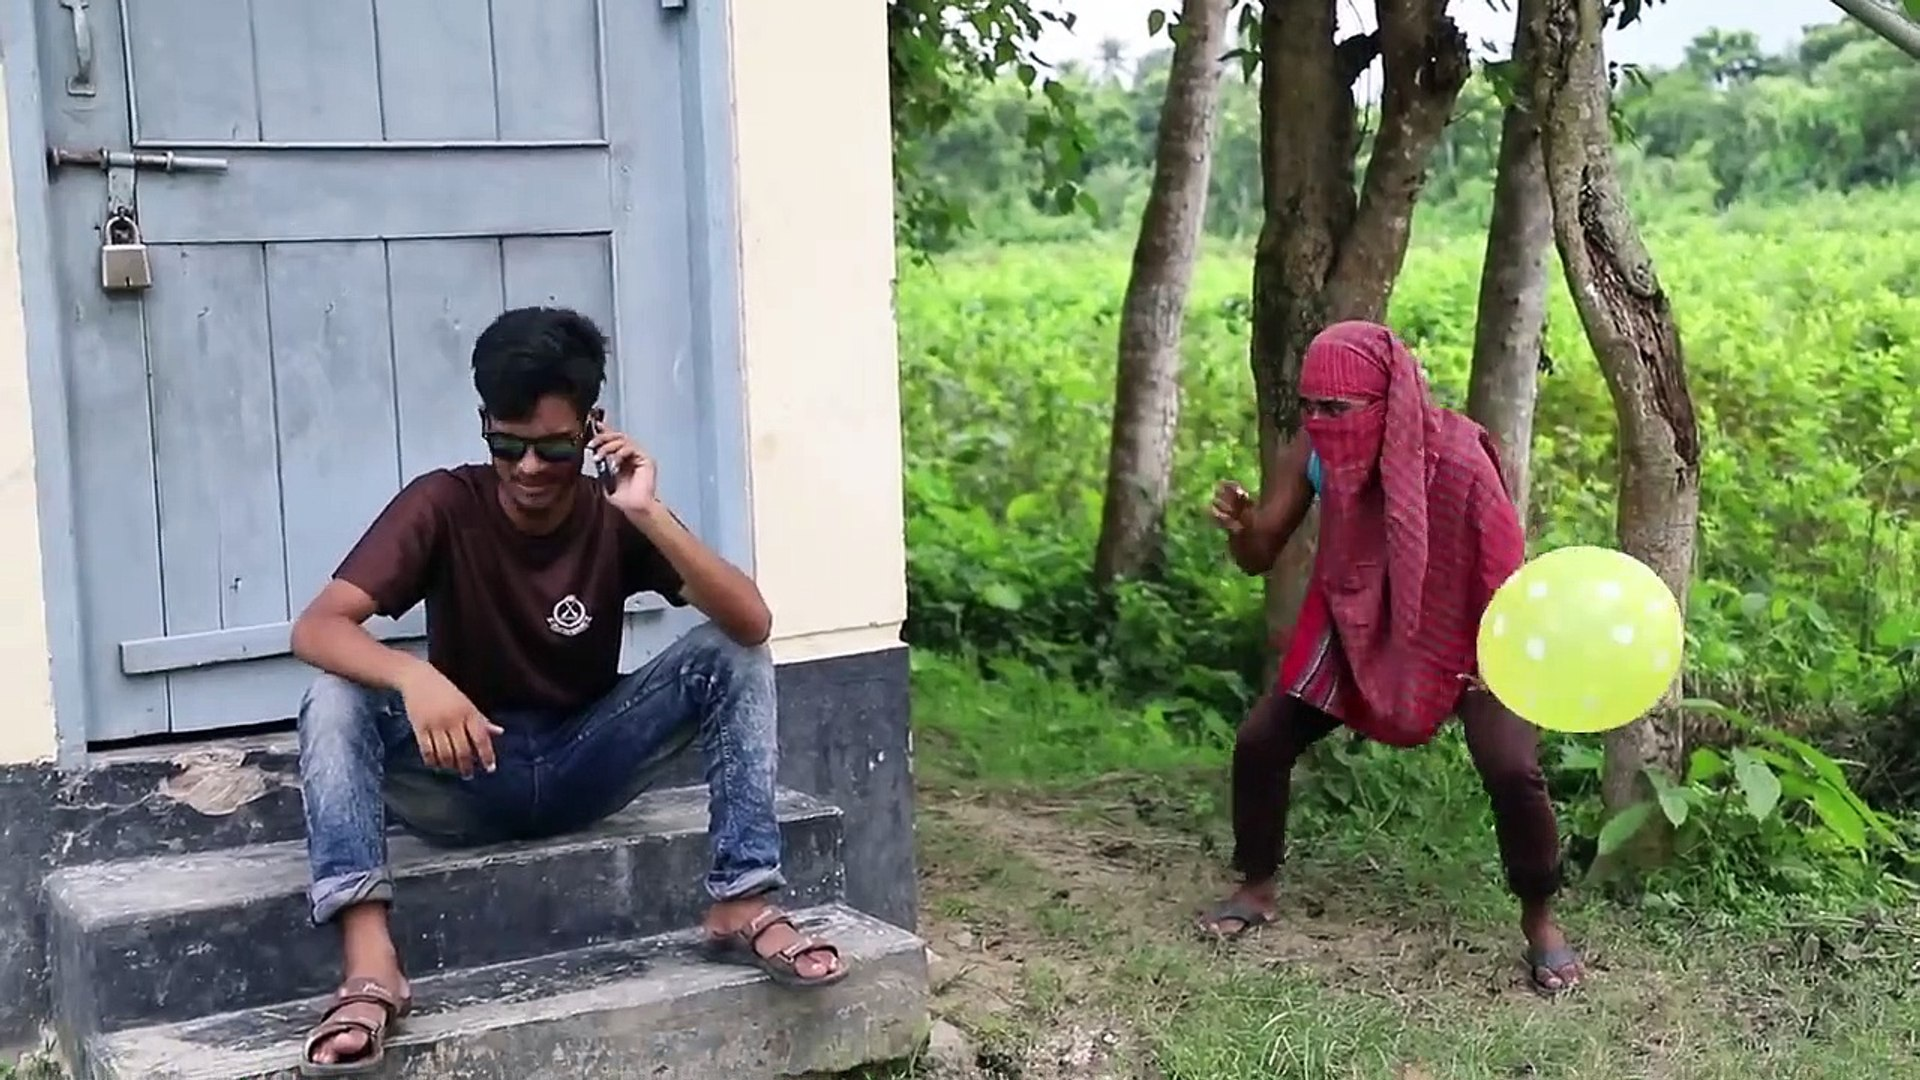 Must Watch New Funny   Comedy Videos 2019 - Episode 122 - Funny Videos -SohelAhmed